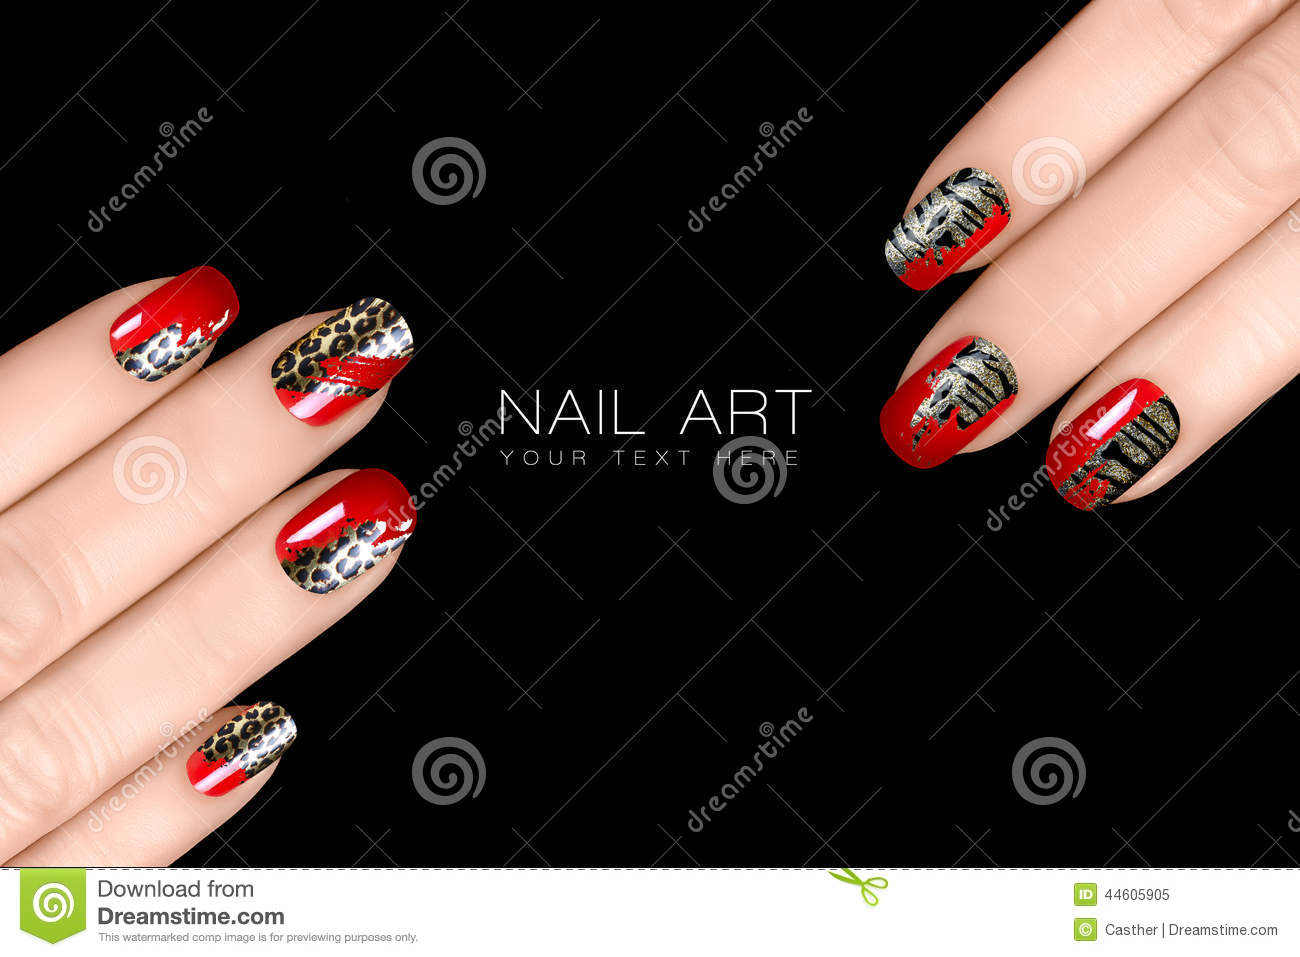 Leopard and Tiger Nail Art. Nail Polish Stickers w